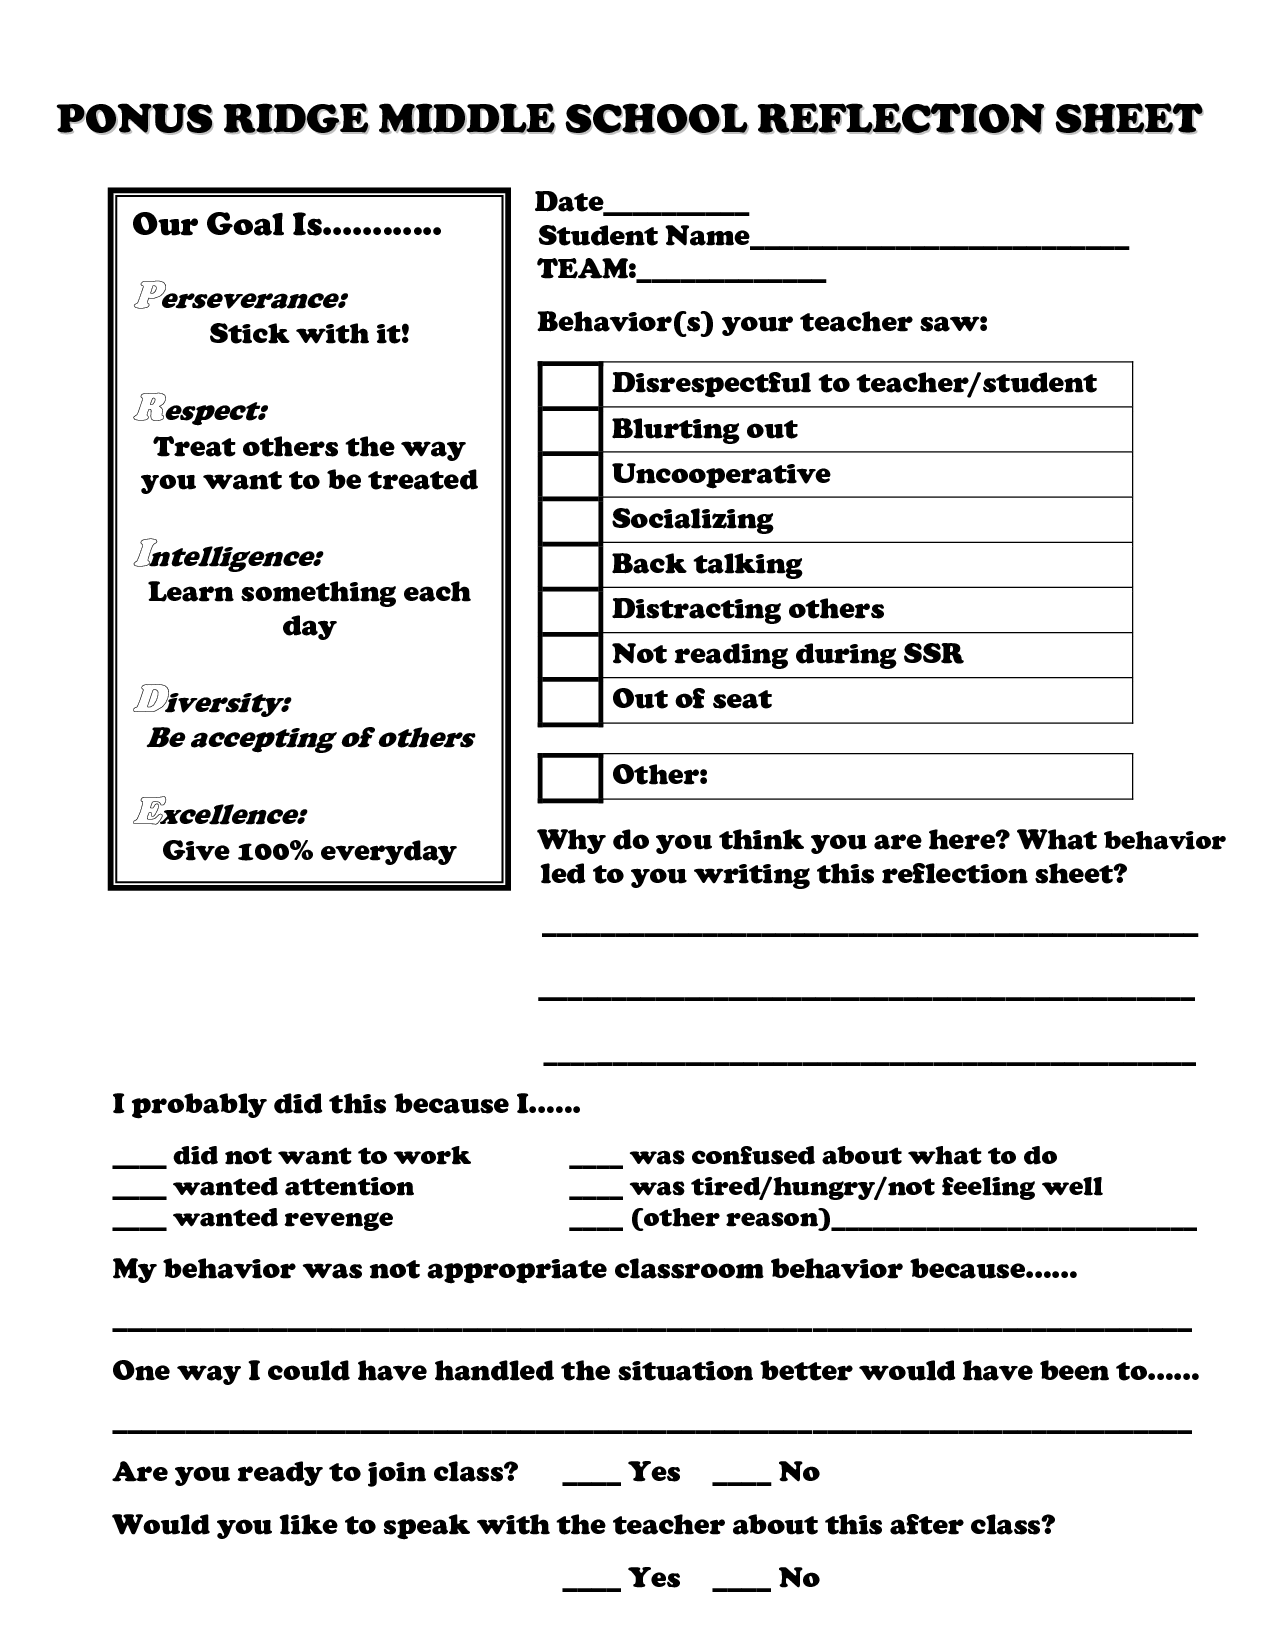 School Reflection Sheet Ponus Ridge Middle School